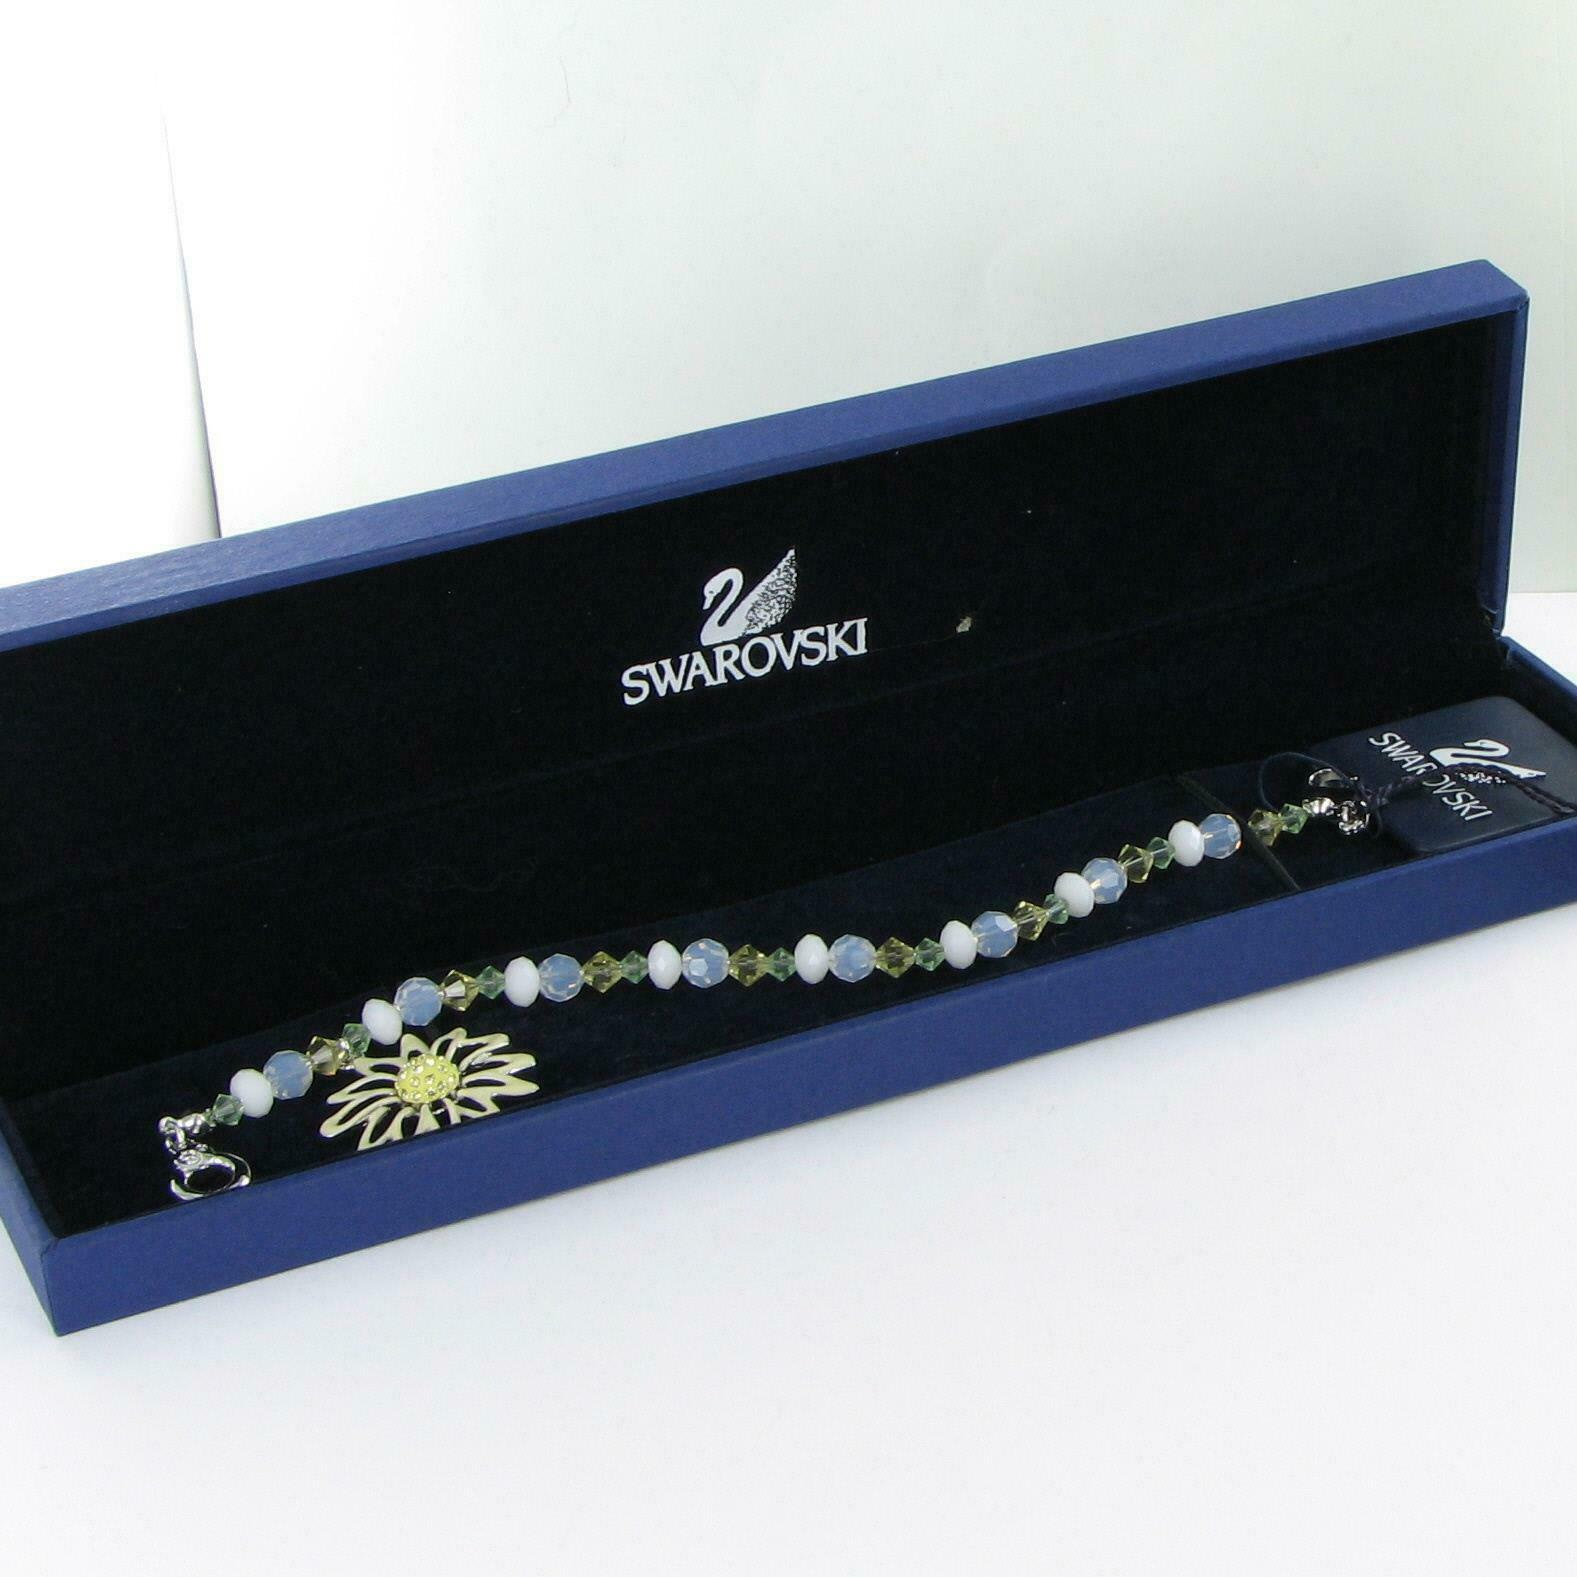 Swarovski White Daisy Beaded Charm Bracelet 1514799 Cert New in Box